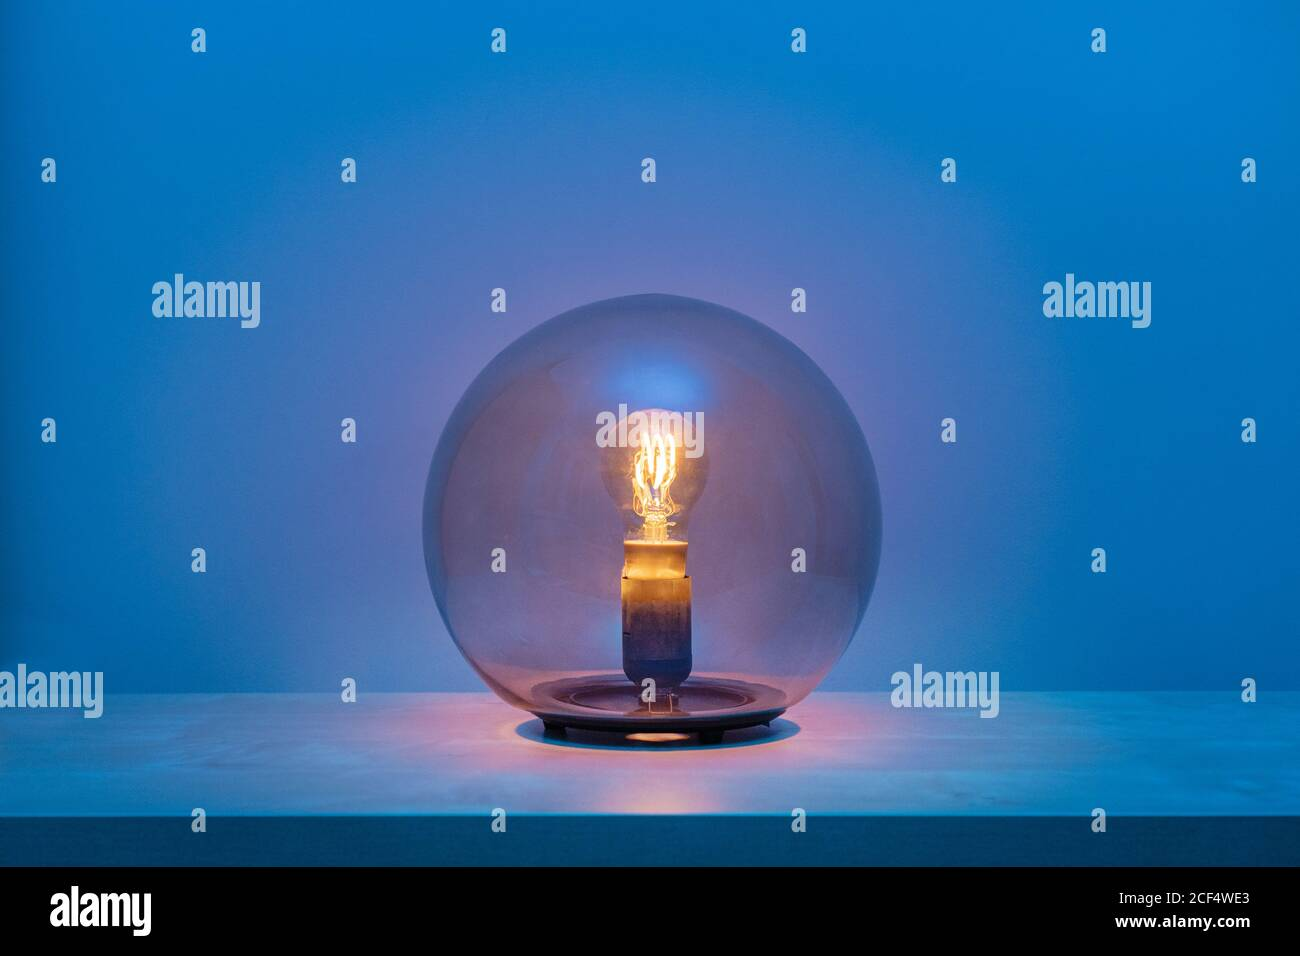 Modern turned on luminaire with light bulb inside thin transparent glass sphere in middle of shelf in blue room at dusk Stock Photo